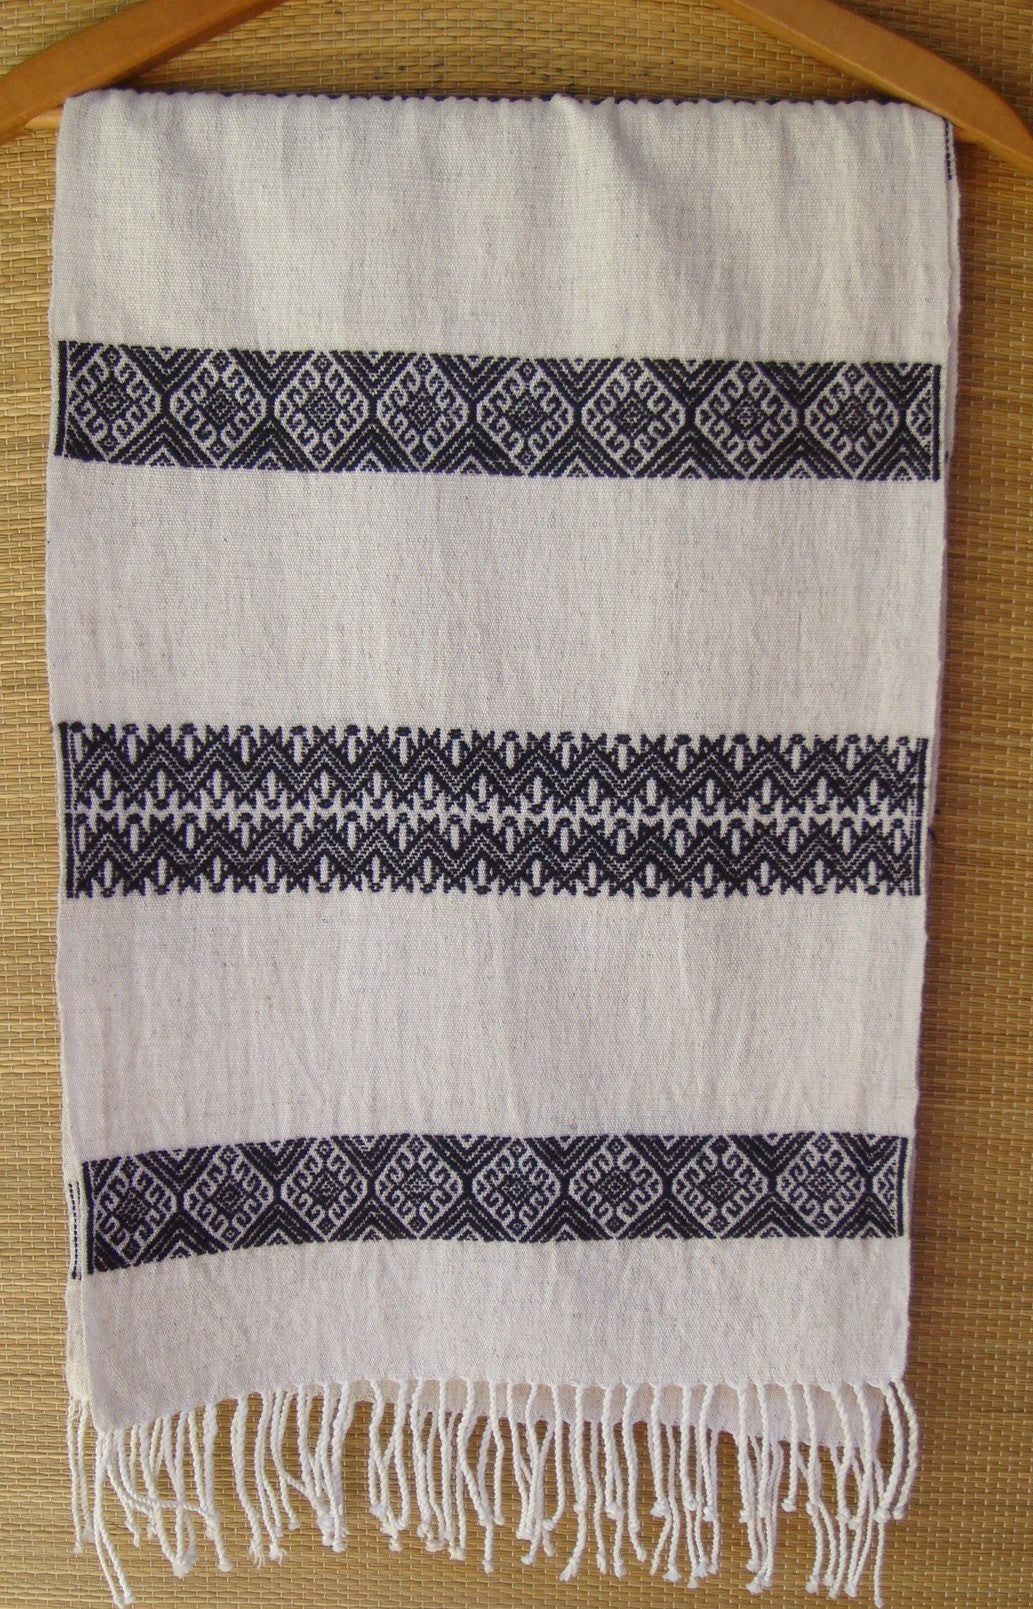 Black White Rebozo Shawl Tablerunner with Geometric Pattern from Chiapas Mexico